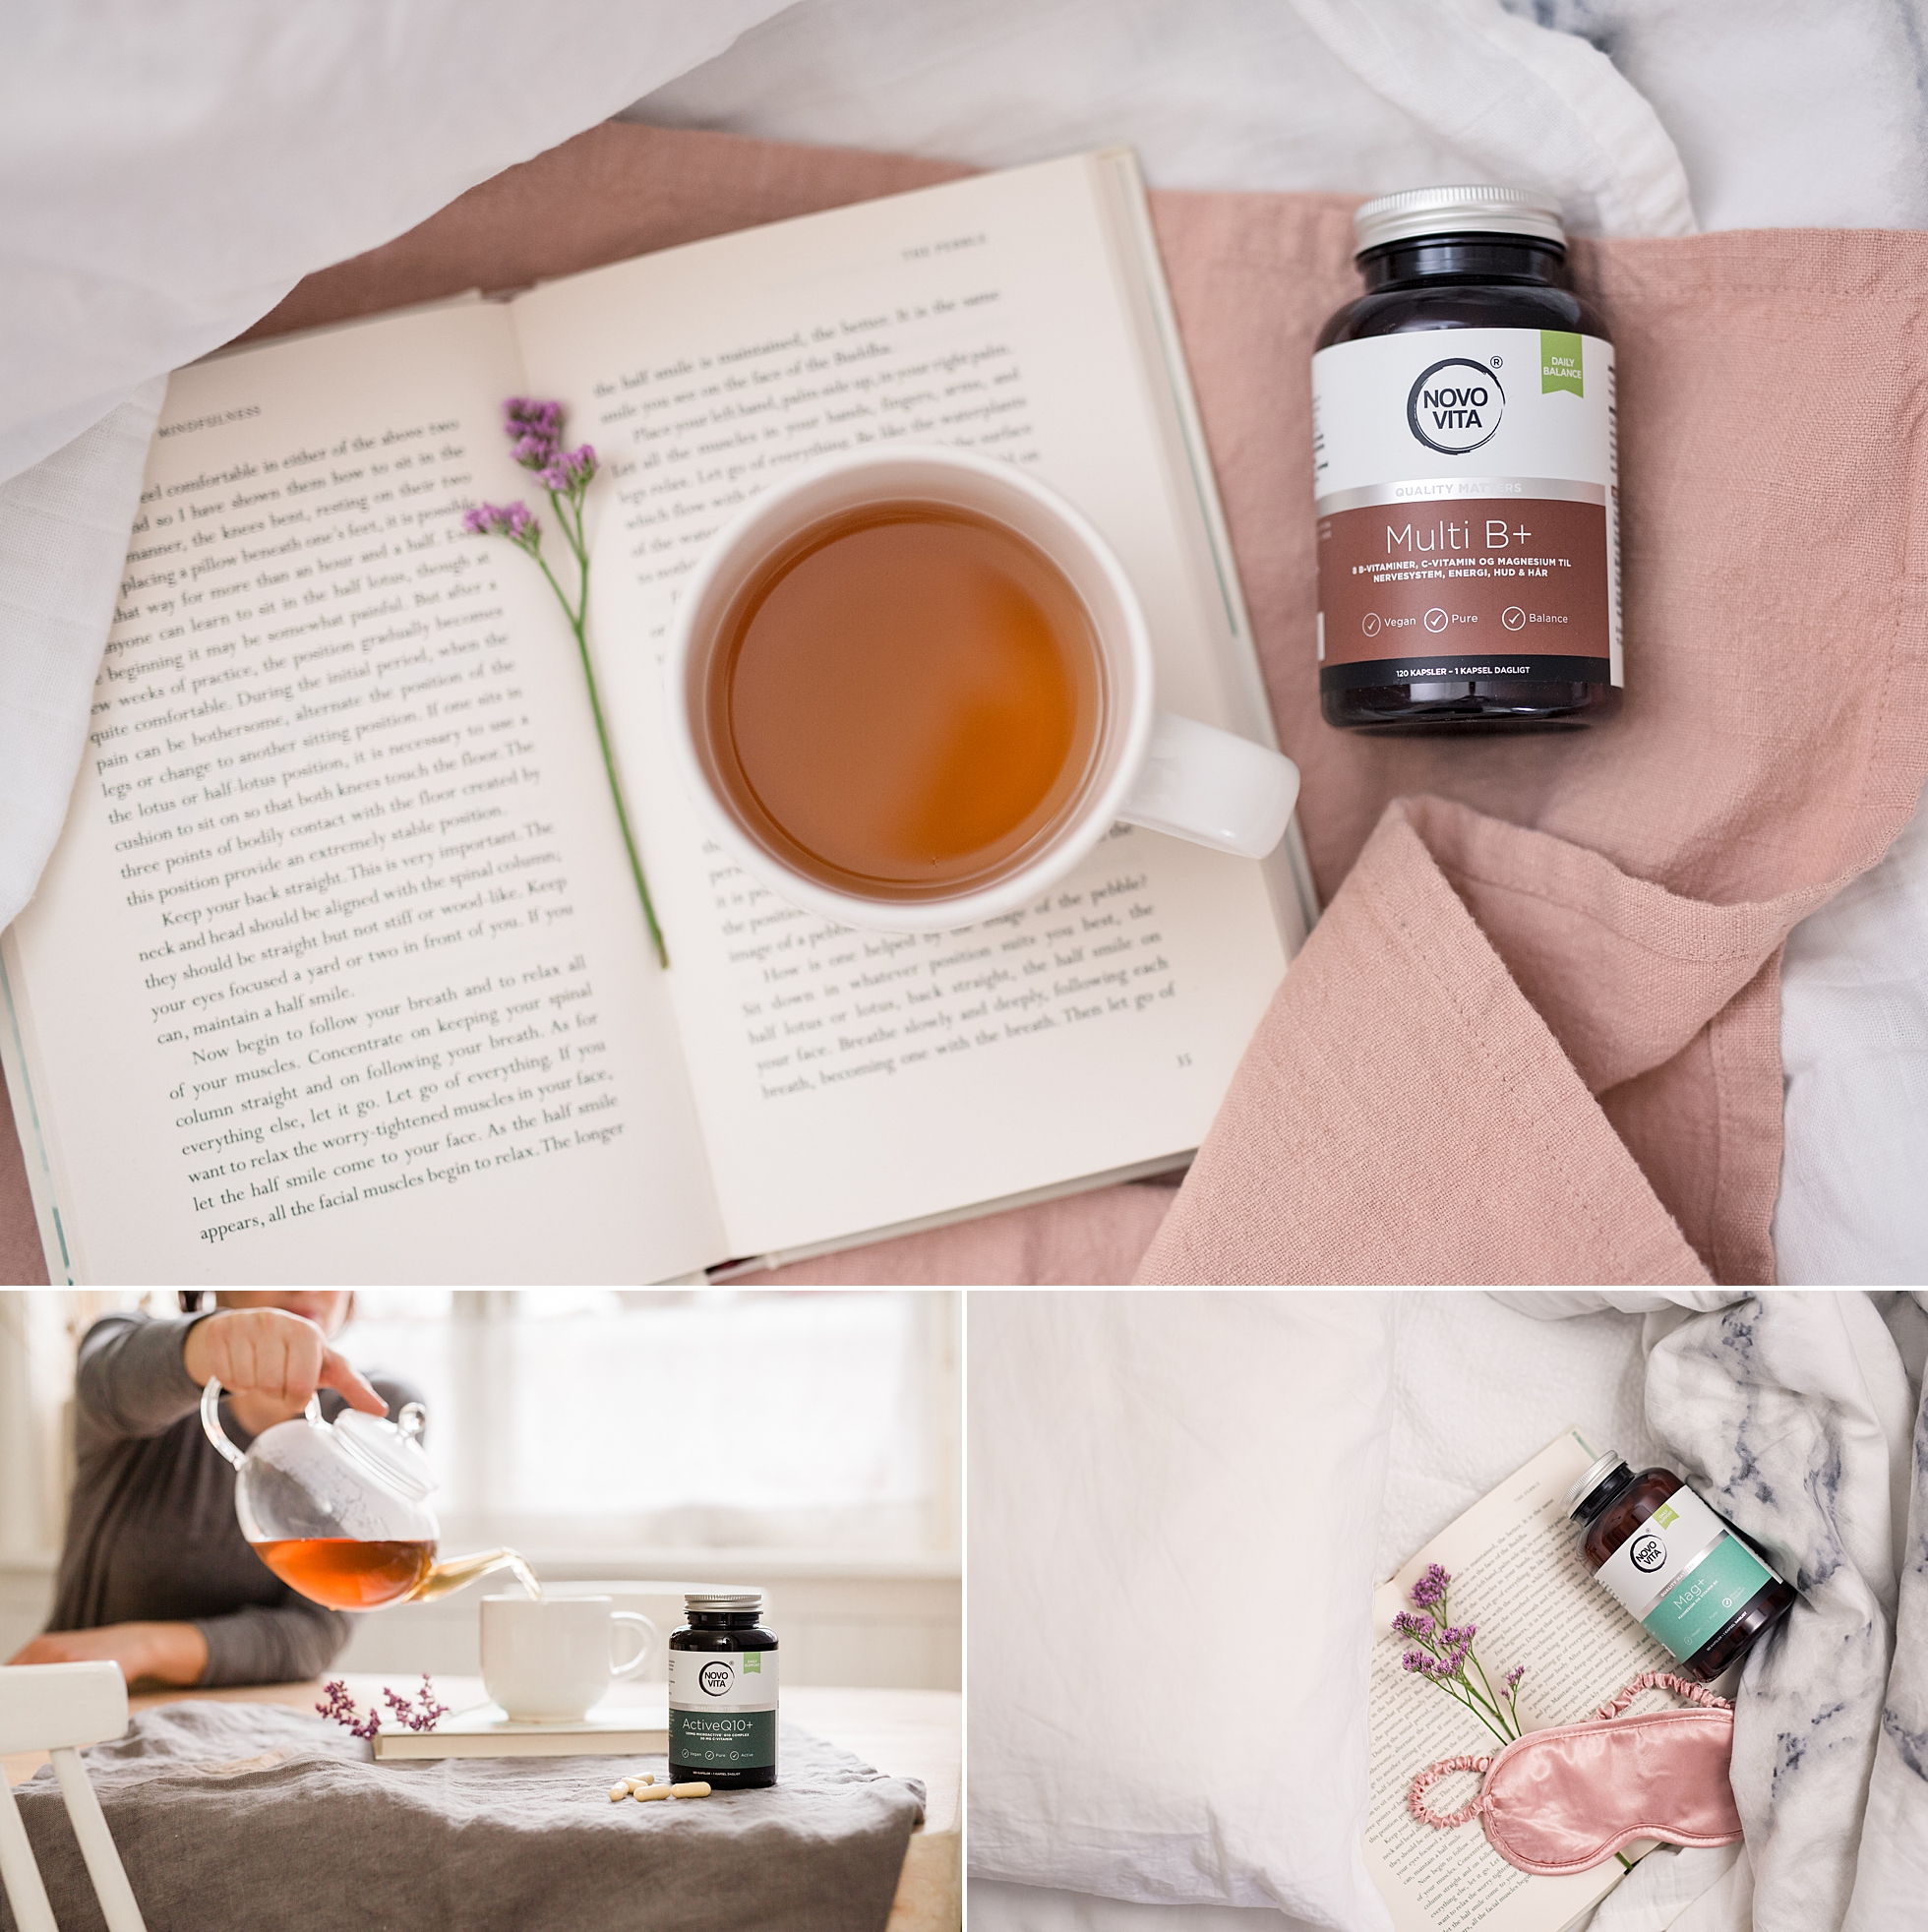 Product photos of tea and vitamins